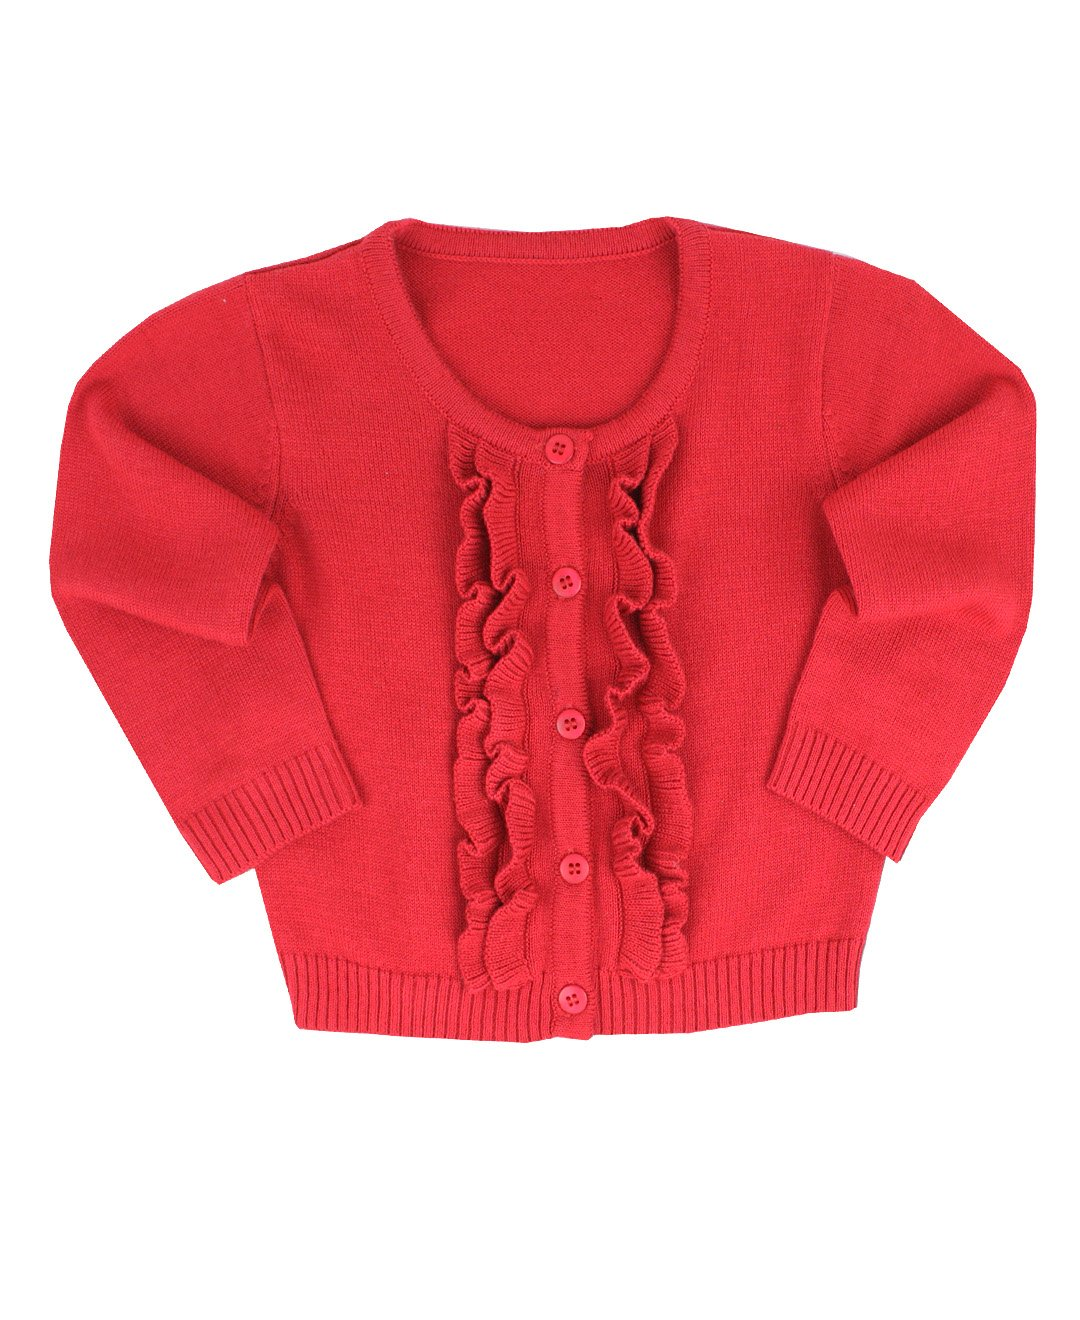 RuffleButts Little Girls Ruffled Long Sleeve Cardigan HOSYYXX-CARD-SC-TDLR